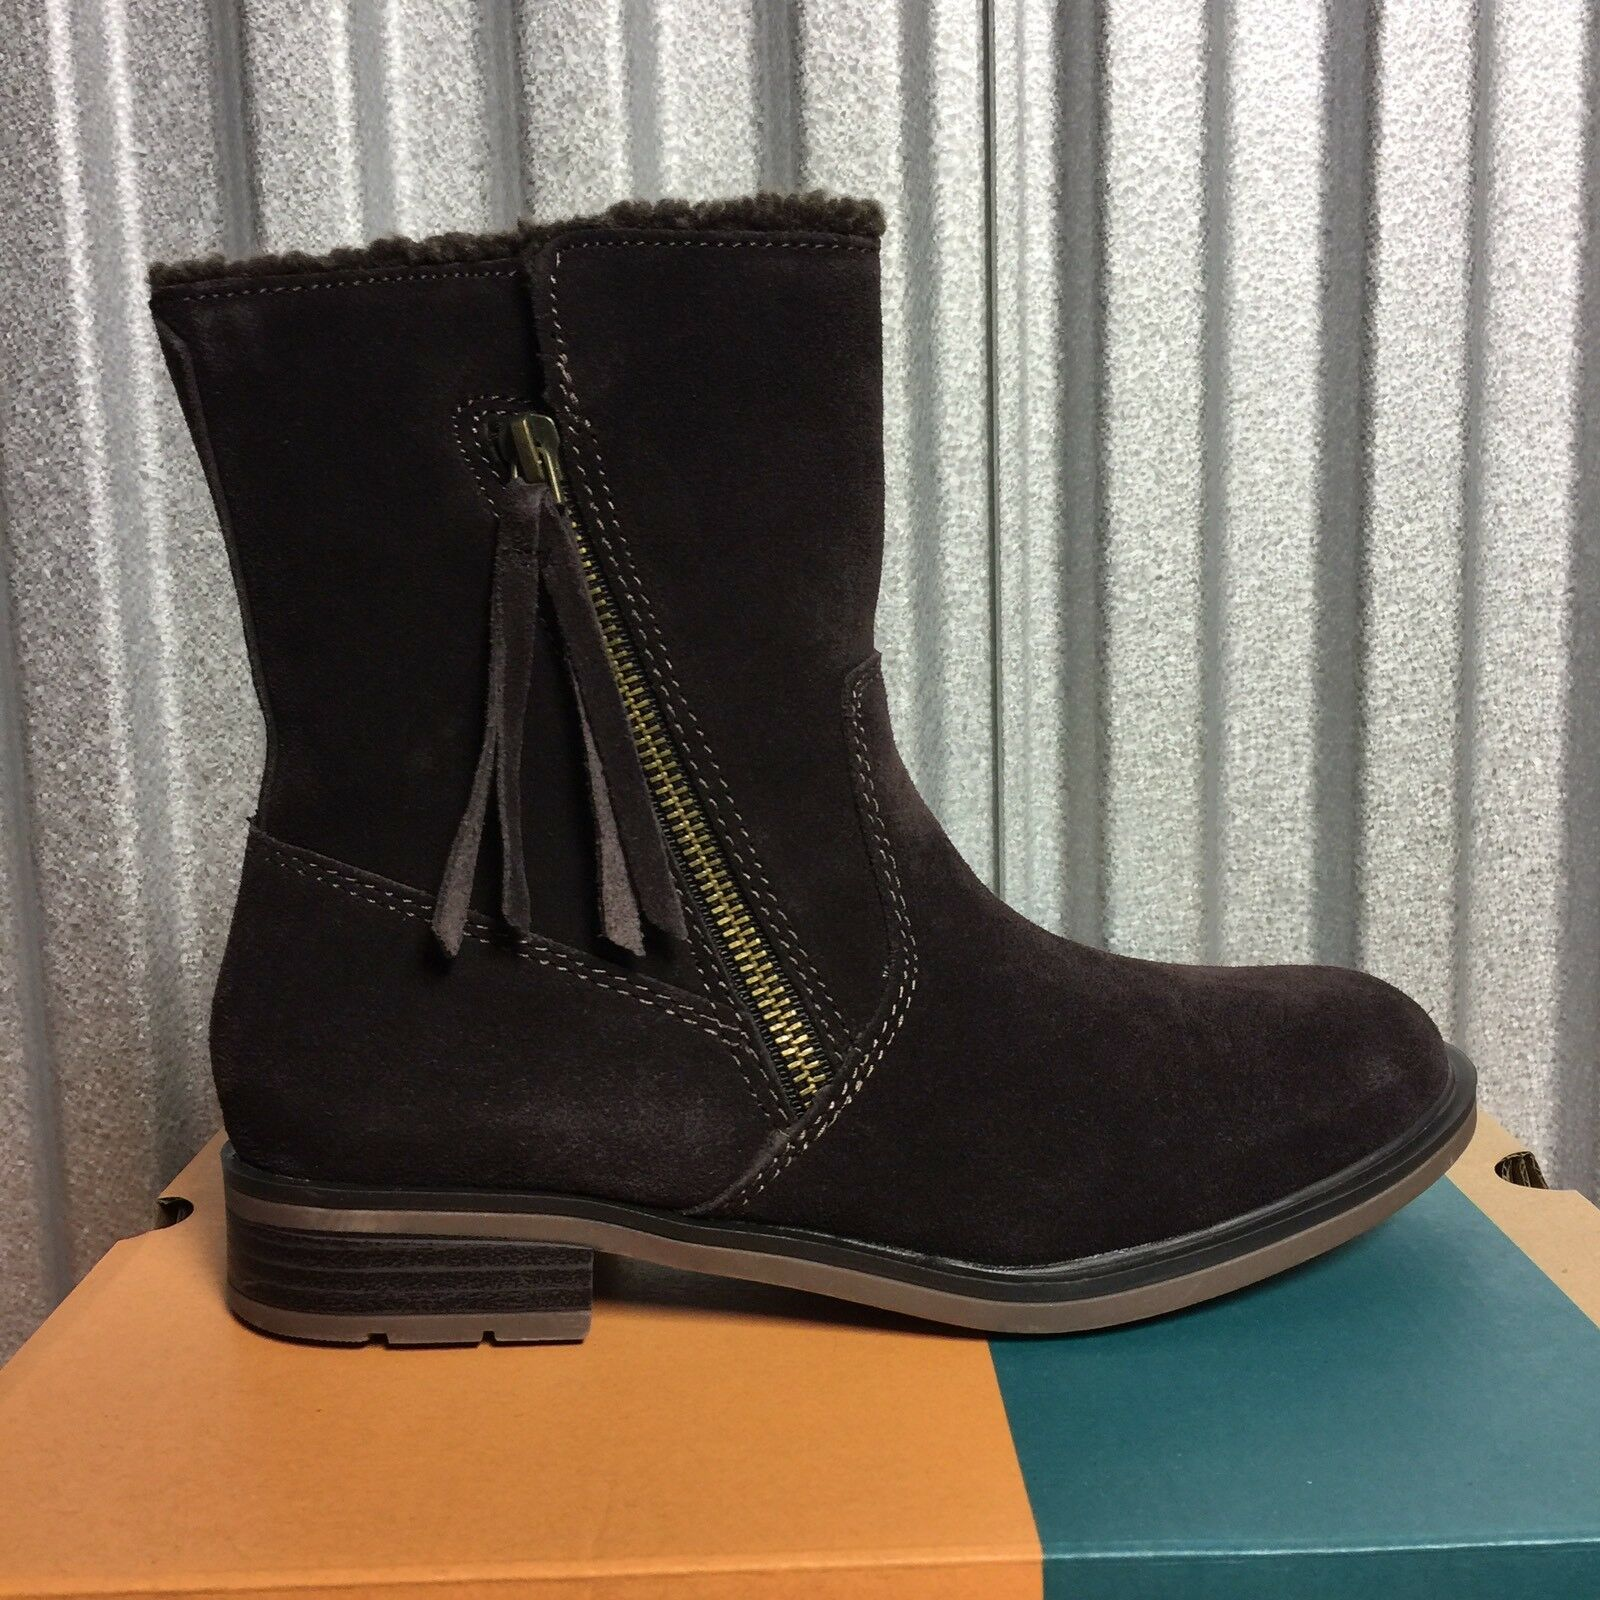 New SPORTO Chocolate 'GIRL' Water Resistant Suede Boots 6 M